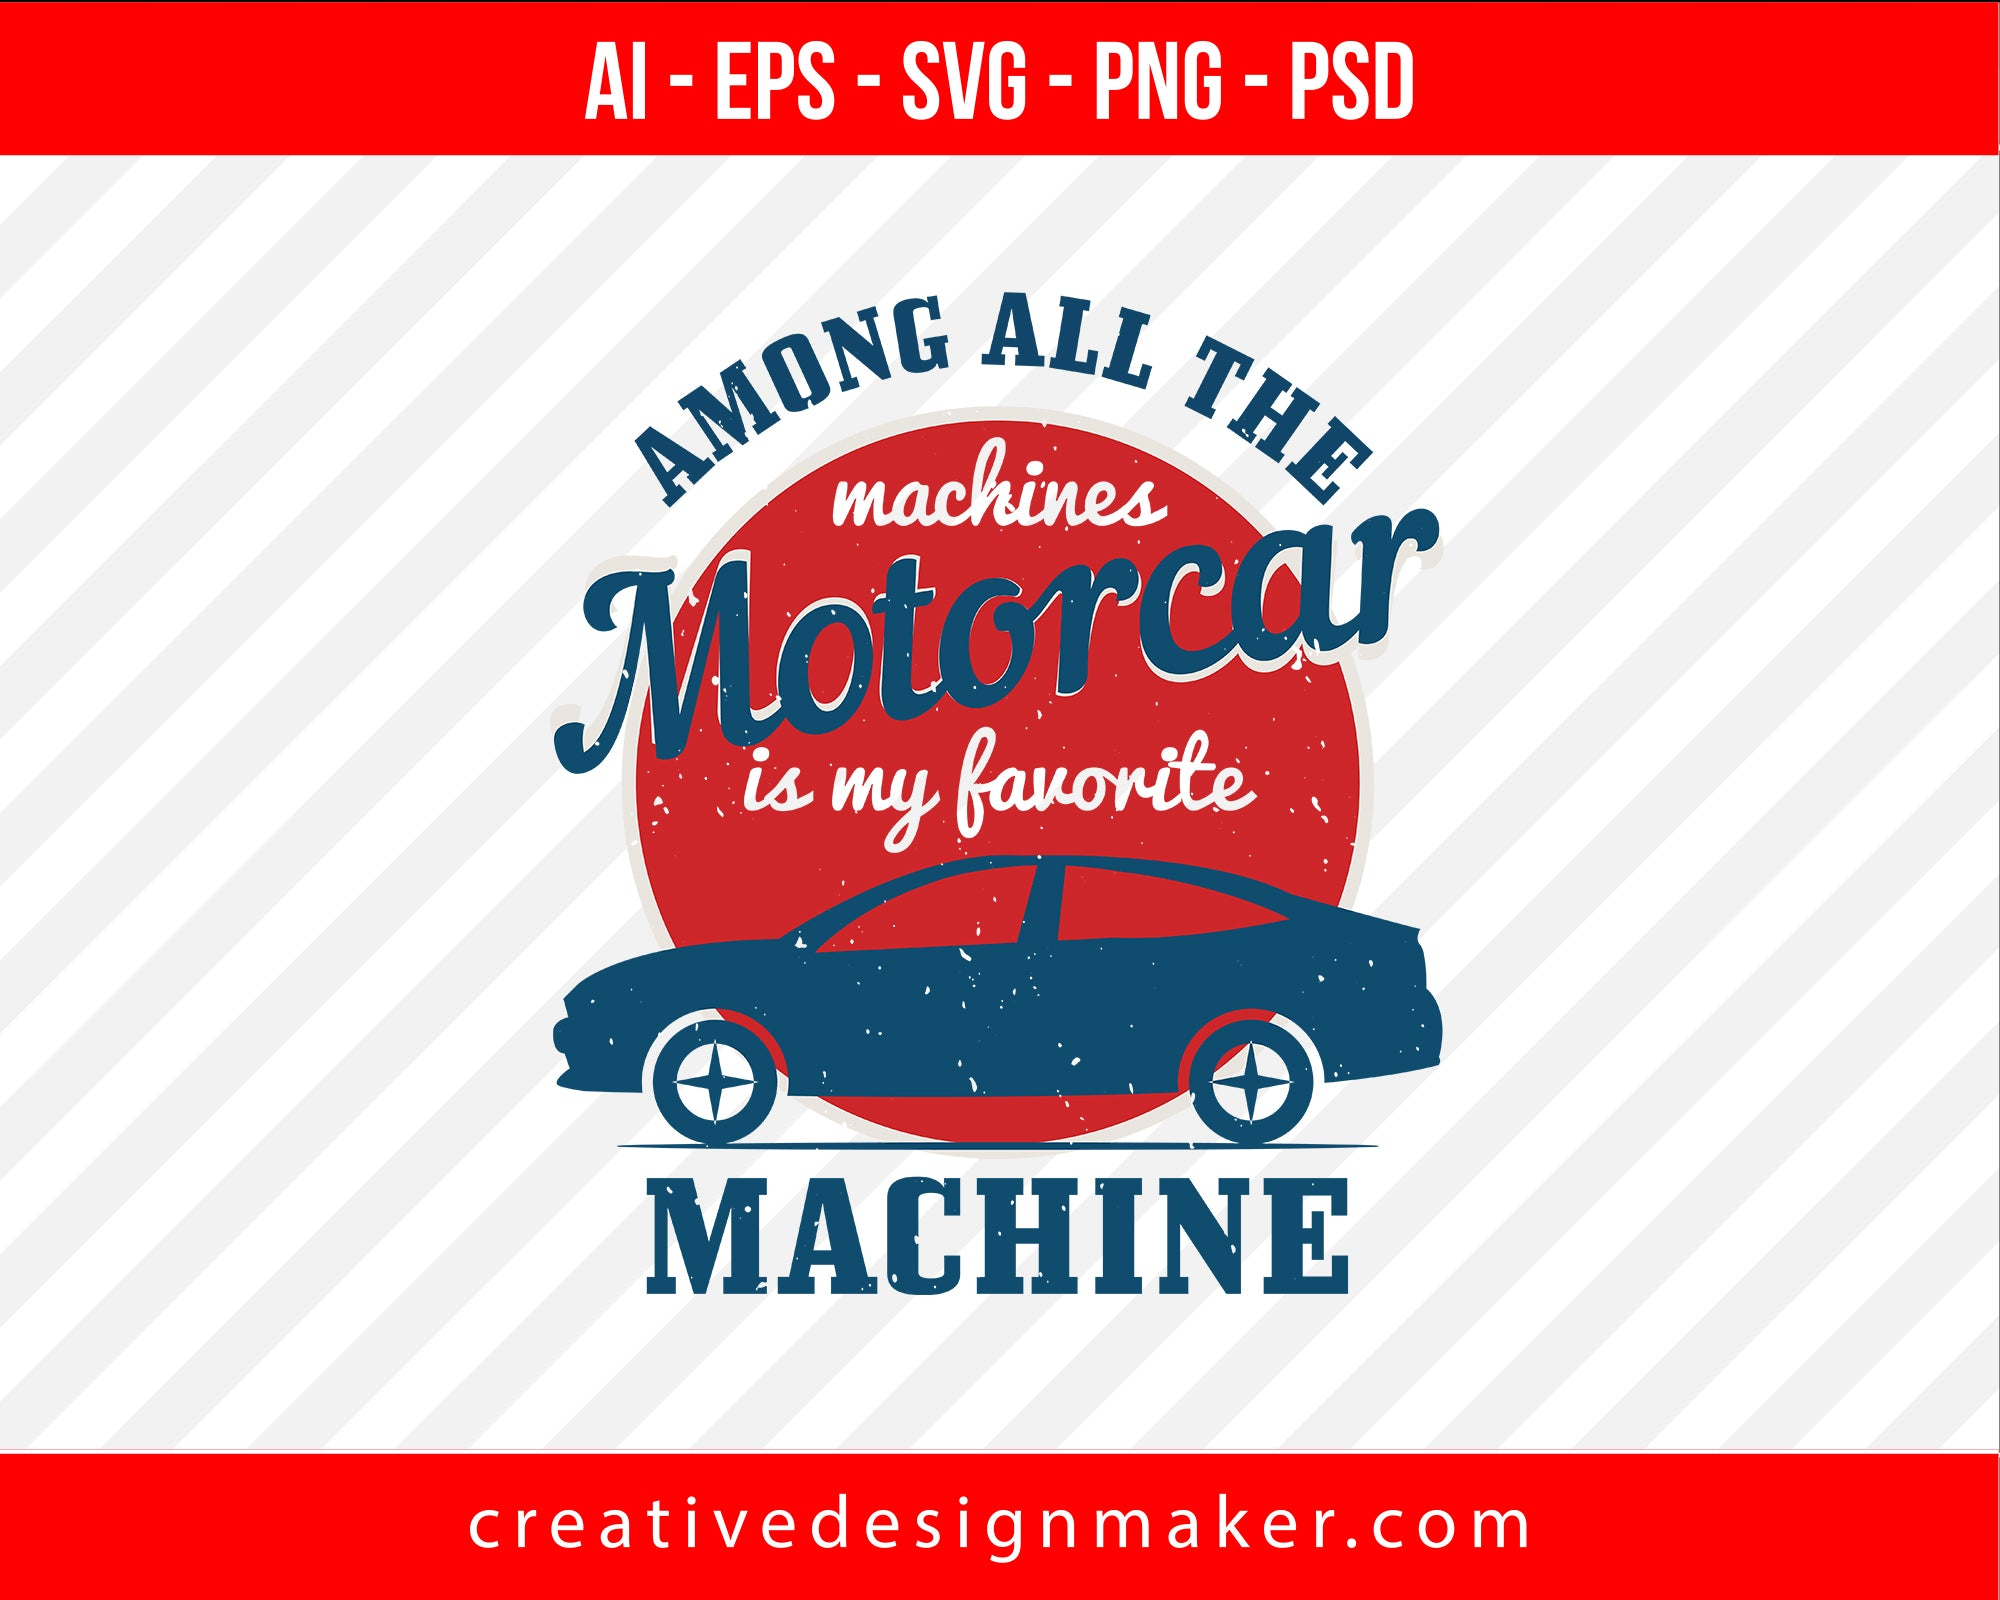 Among all the machines, motorcar is my favorite machine Vehicles Print Ready Editable T-Shirt SVG Design!